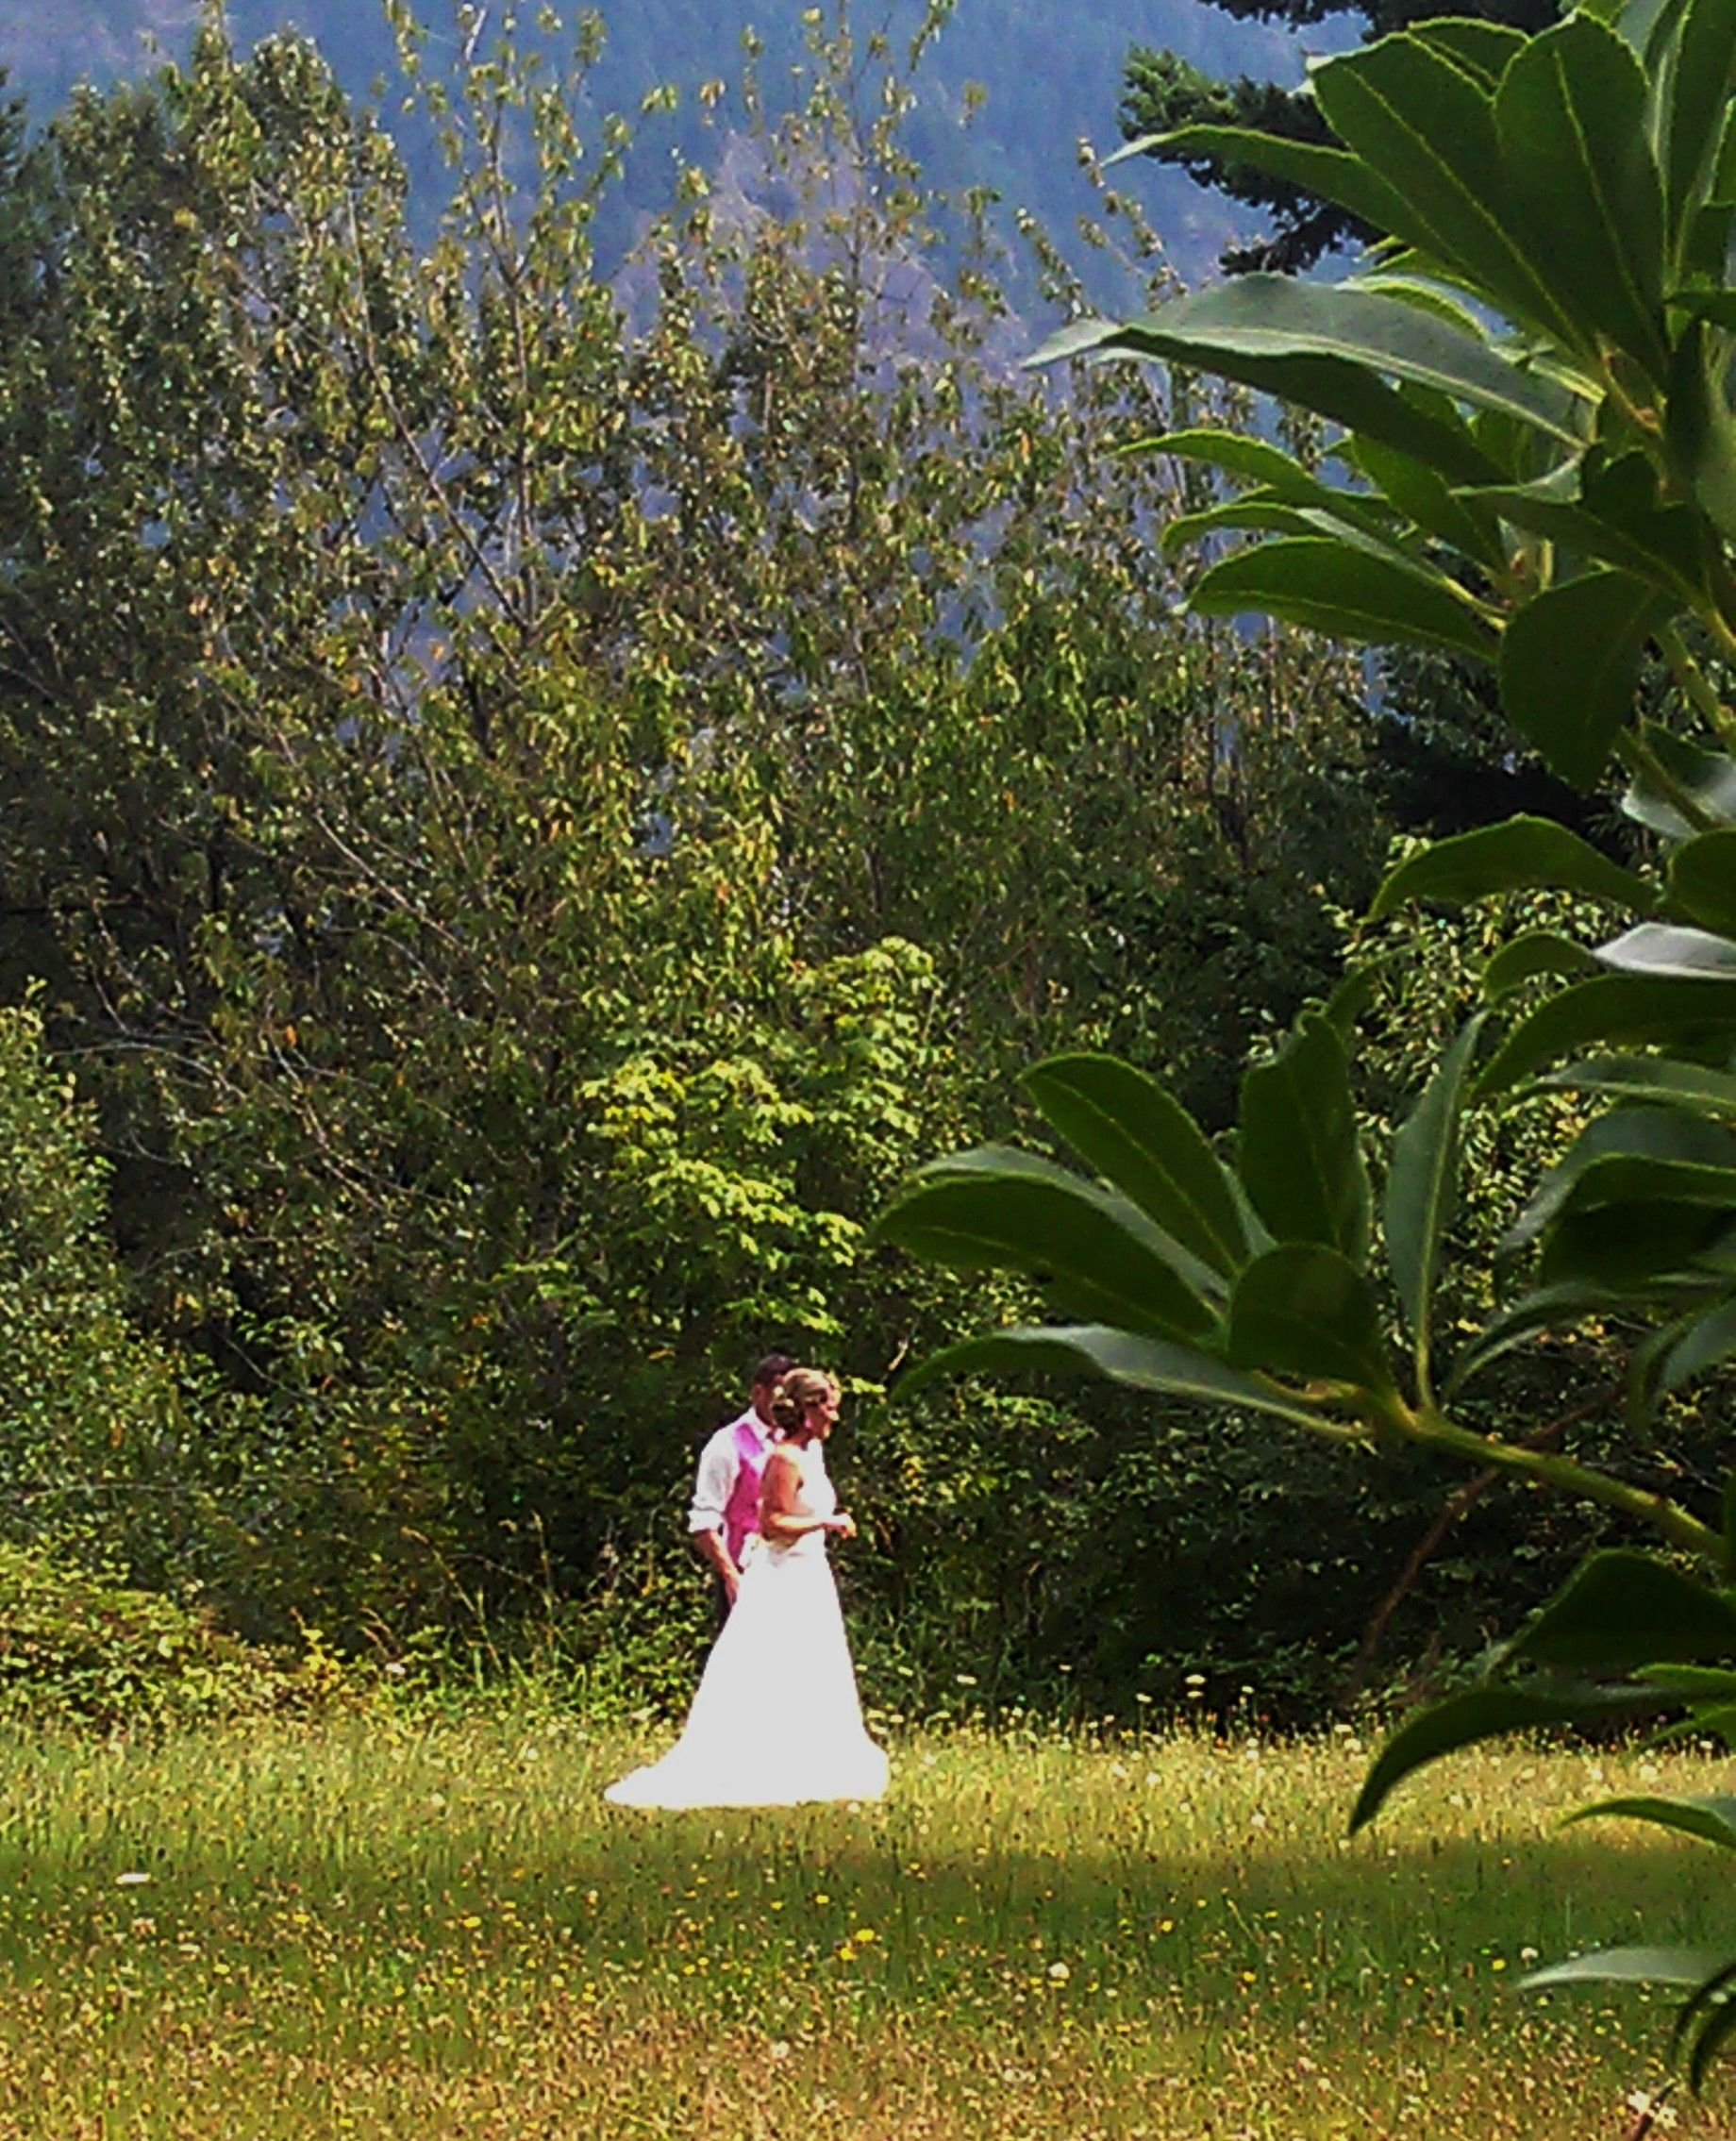 Bride & Groom In A Field Of Dandelions At Cape Horn Estate